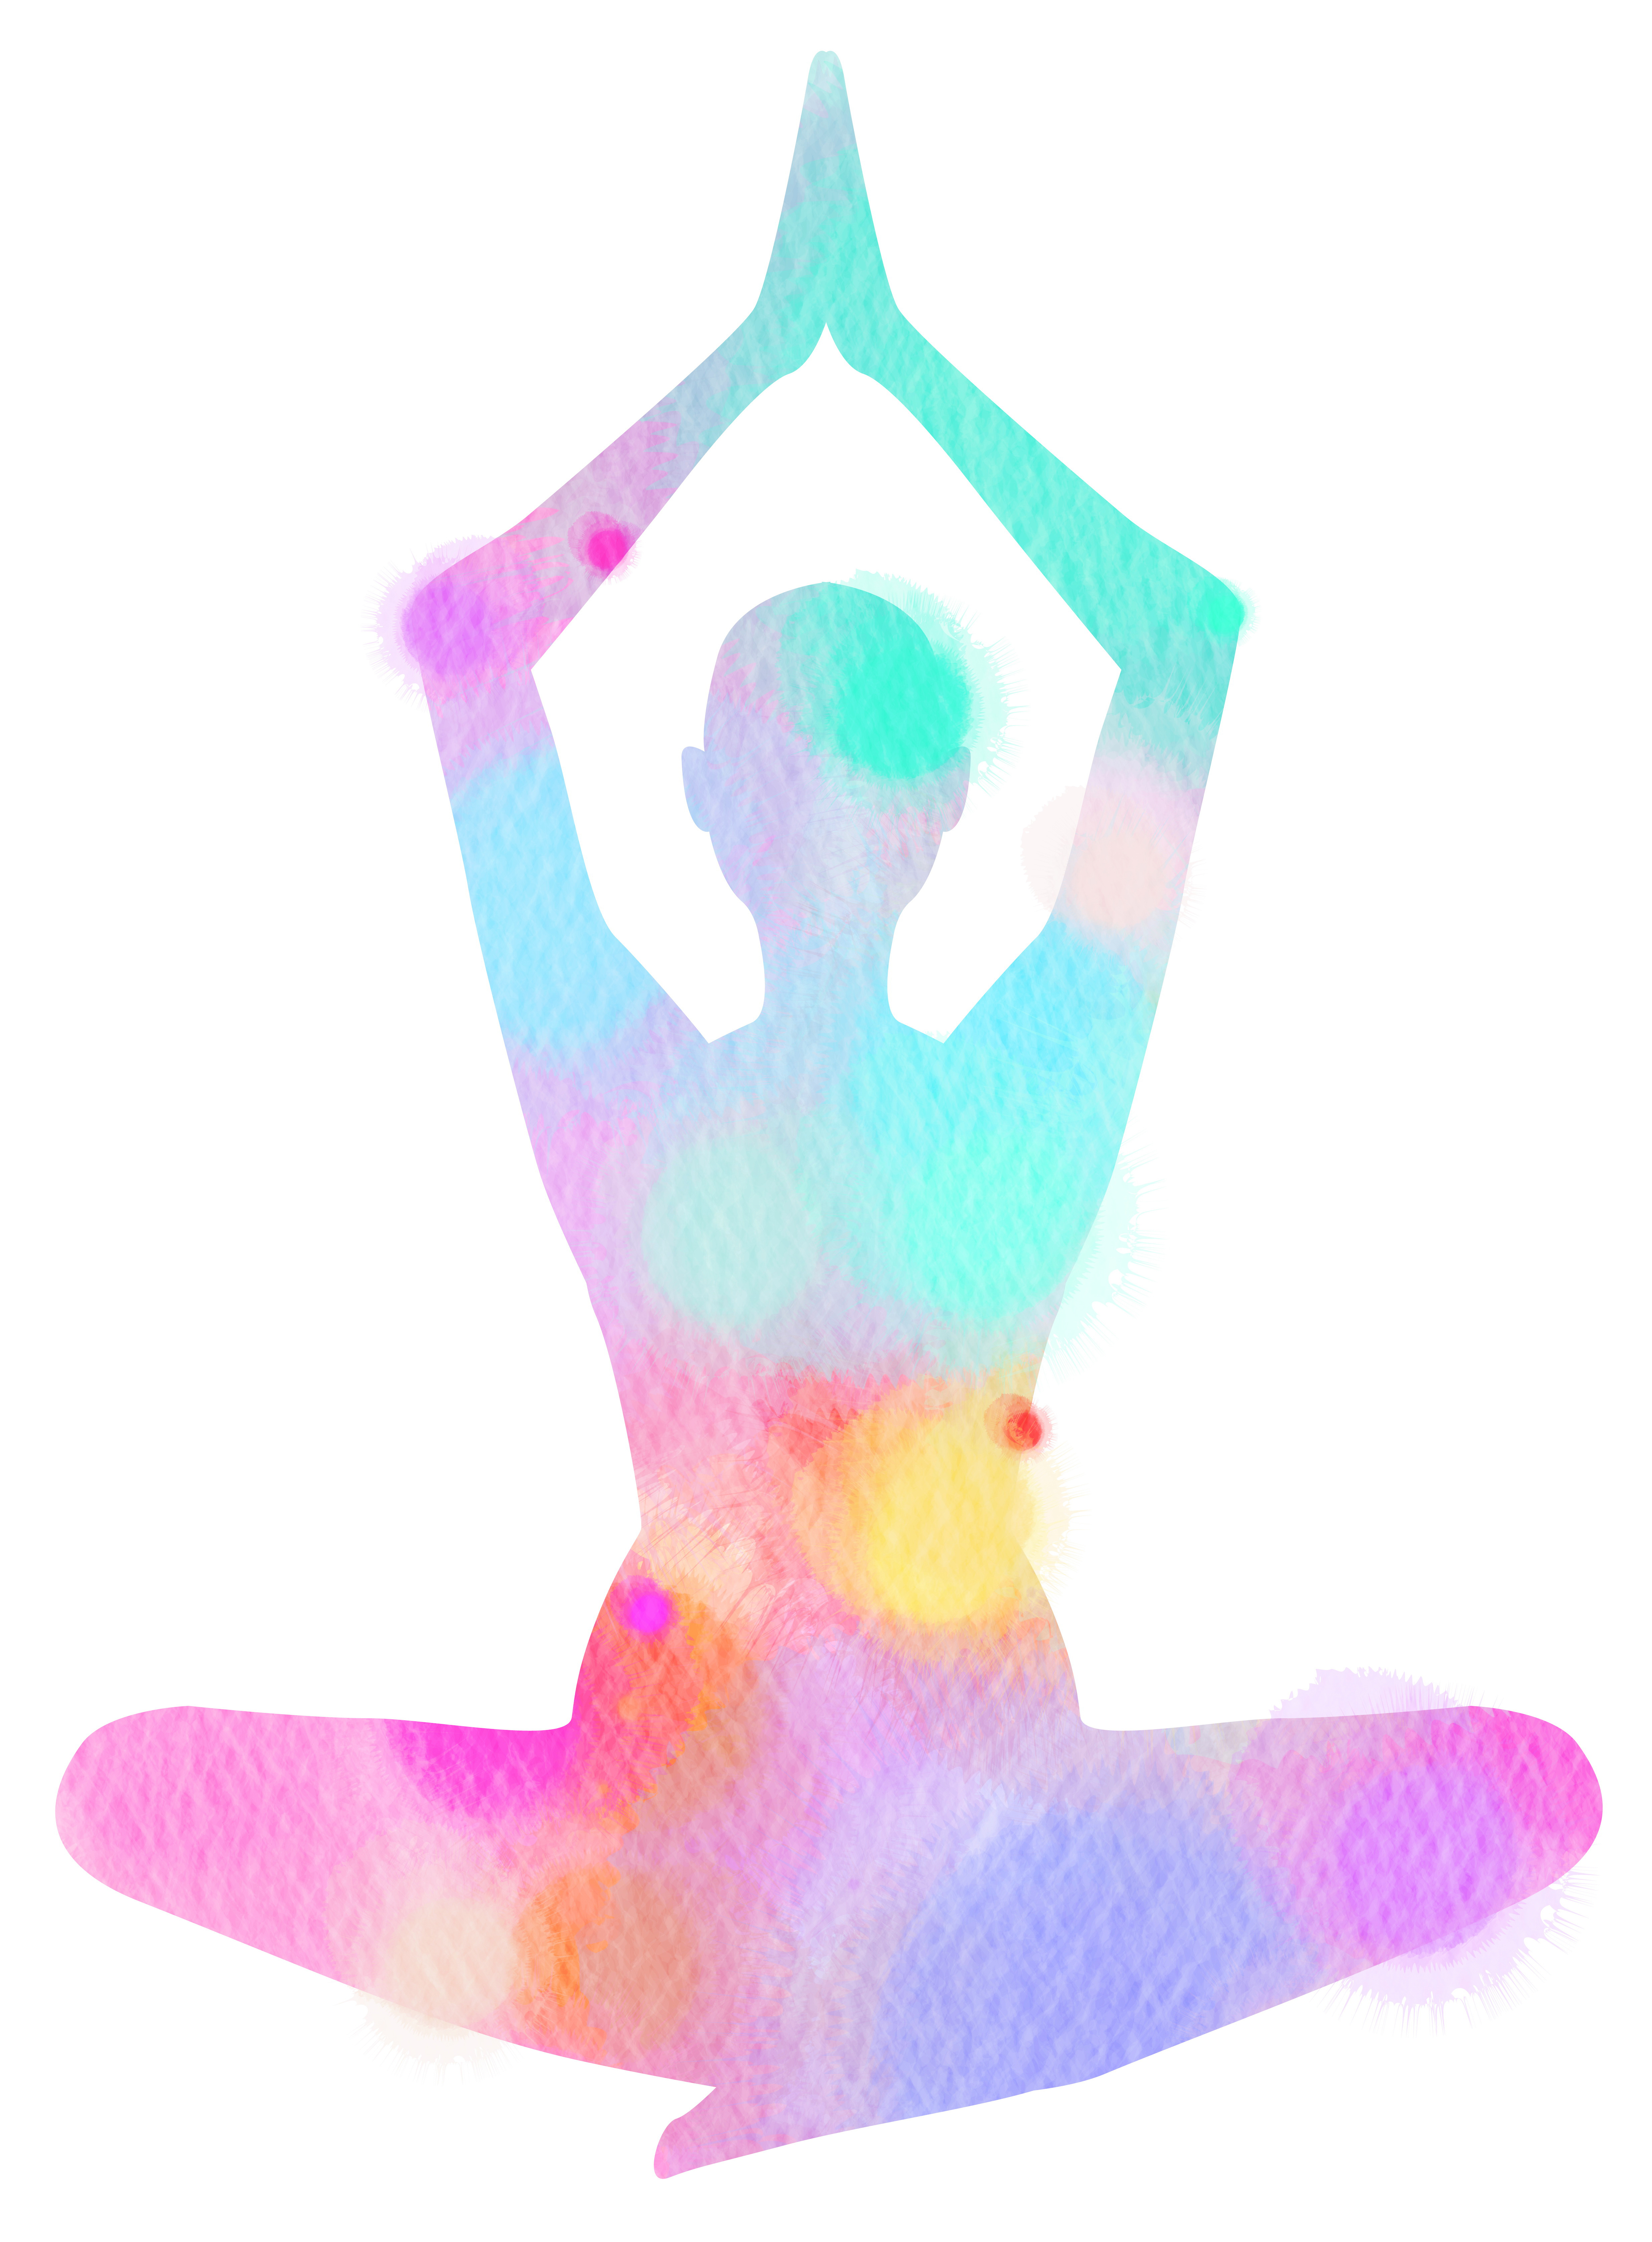 Watercolor yoga silhouette on white background. Digital art pain